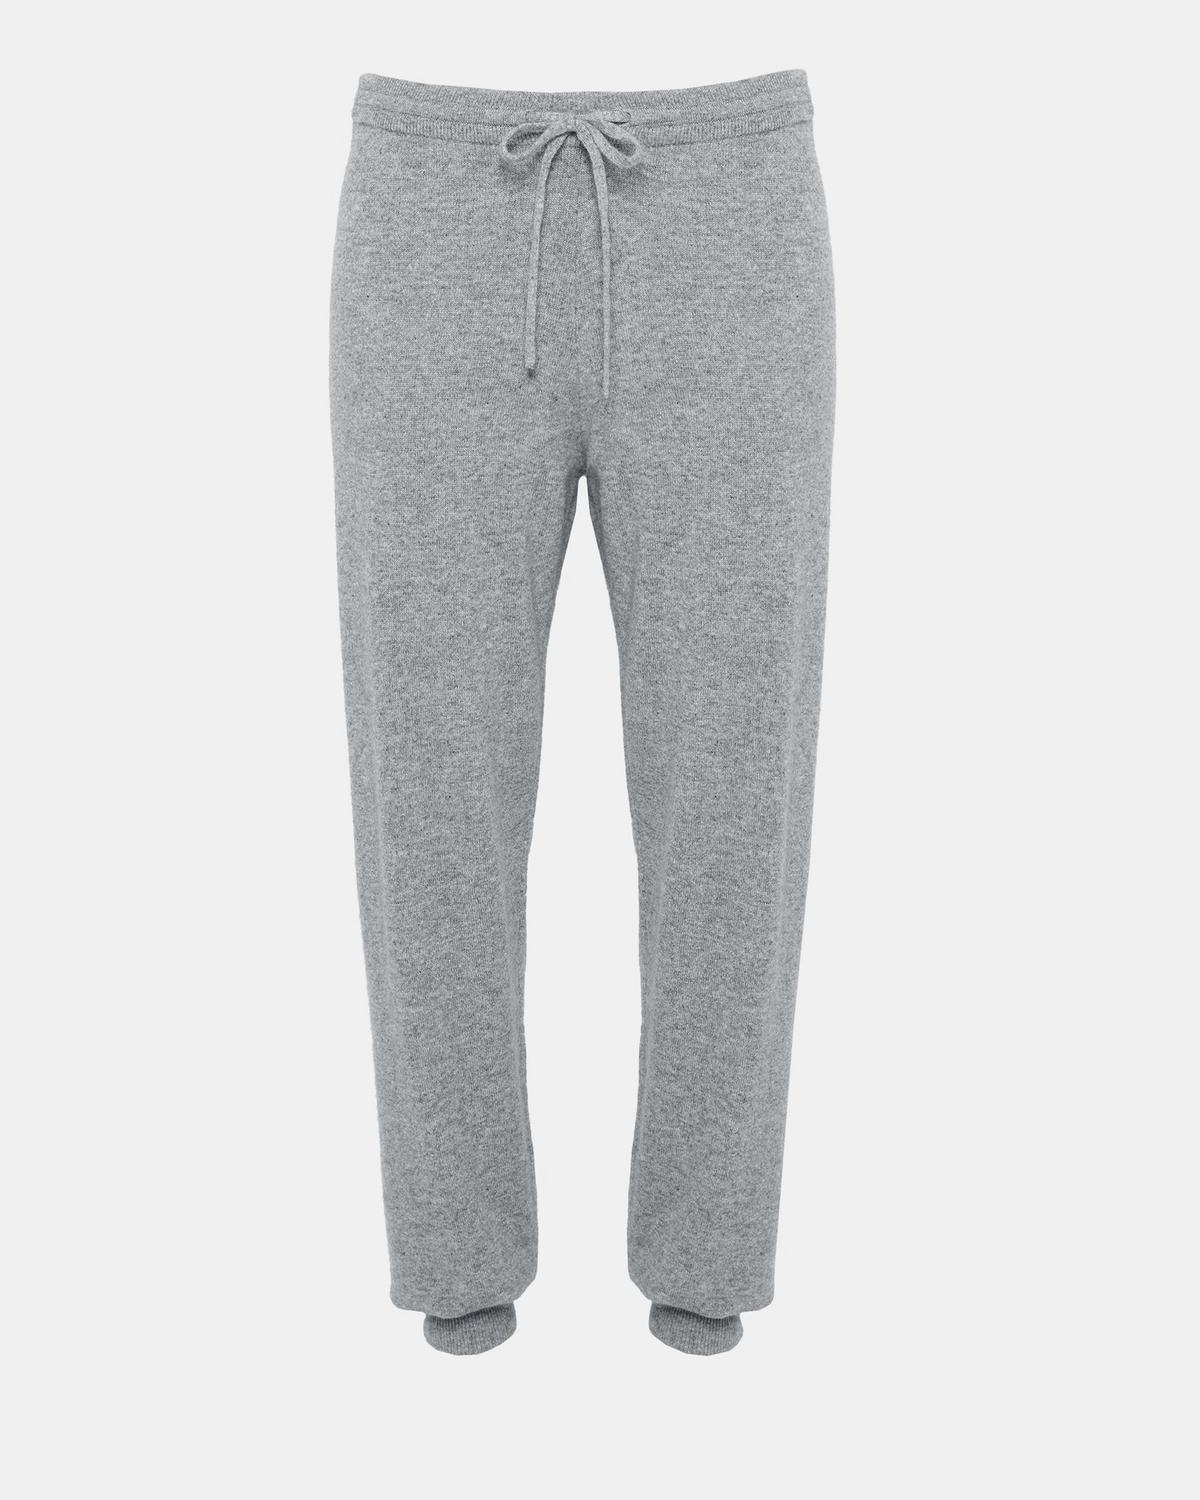 Cashmere Athletic Striped Lounge Pant